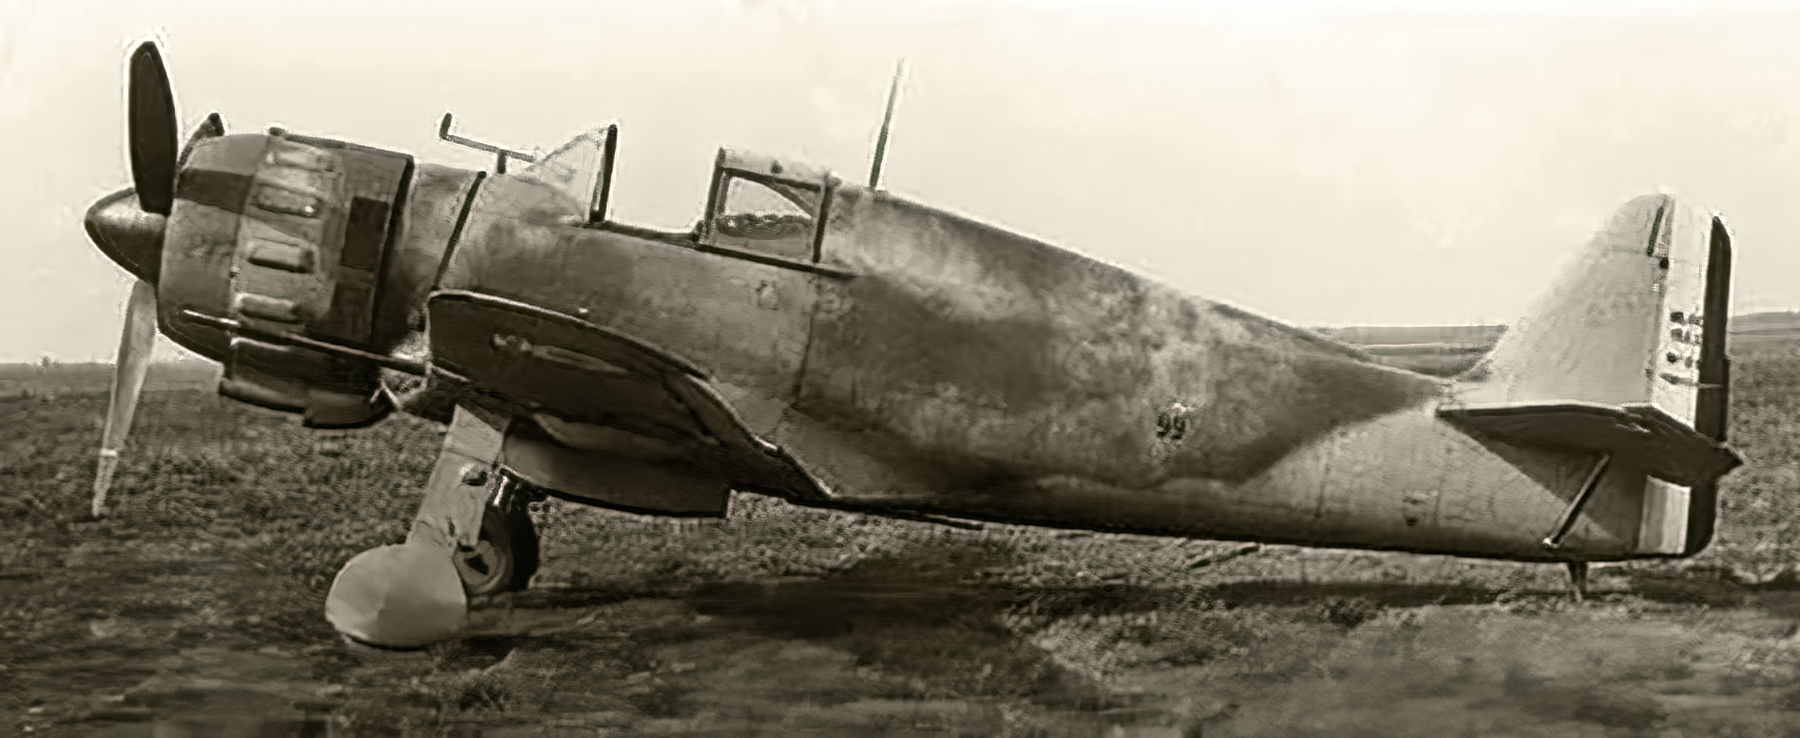 French Airforce Bloch MB 151 Battle of France May 1940 ebay 01